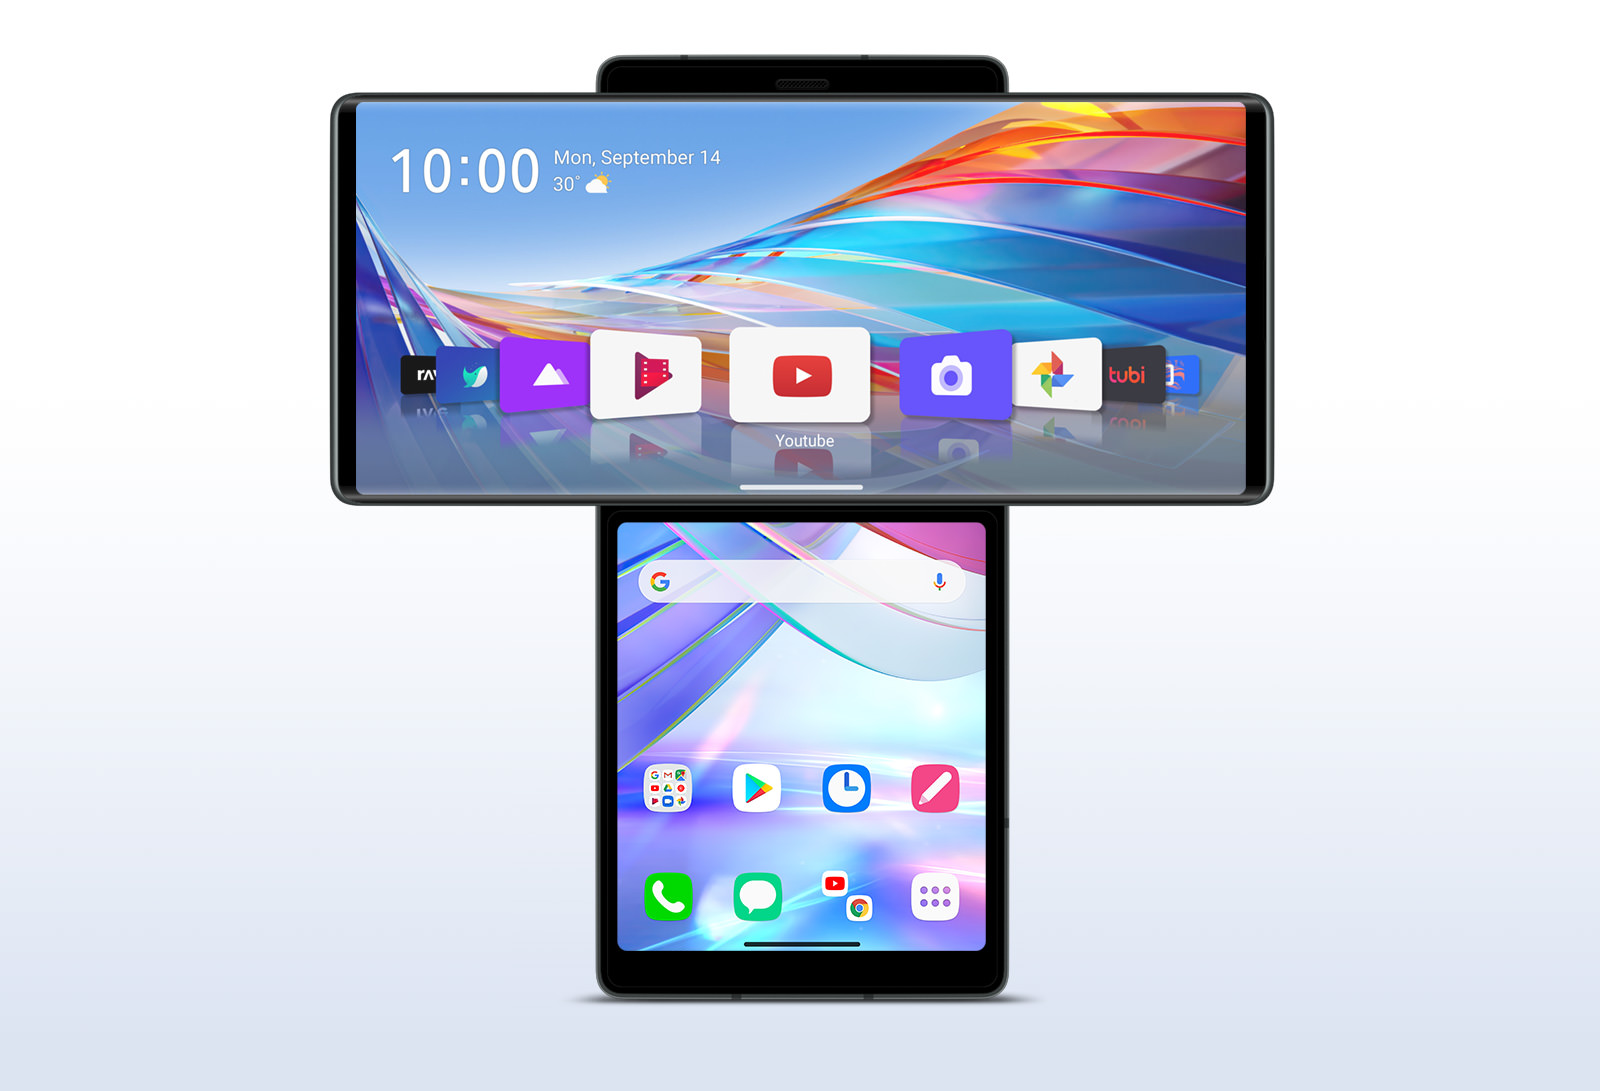 Smartphone swiveling up Main Screen to reveal Second Screen on front view.